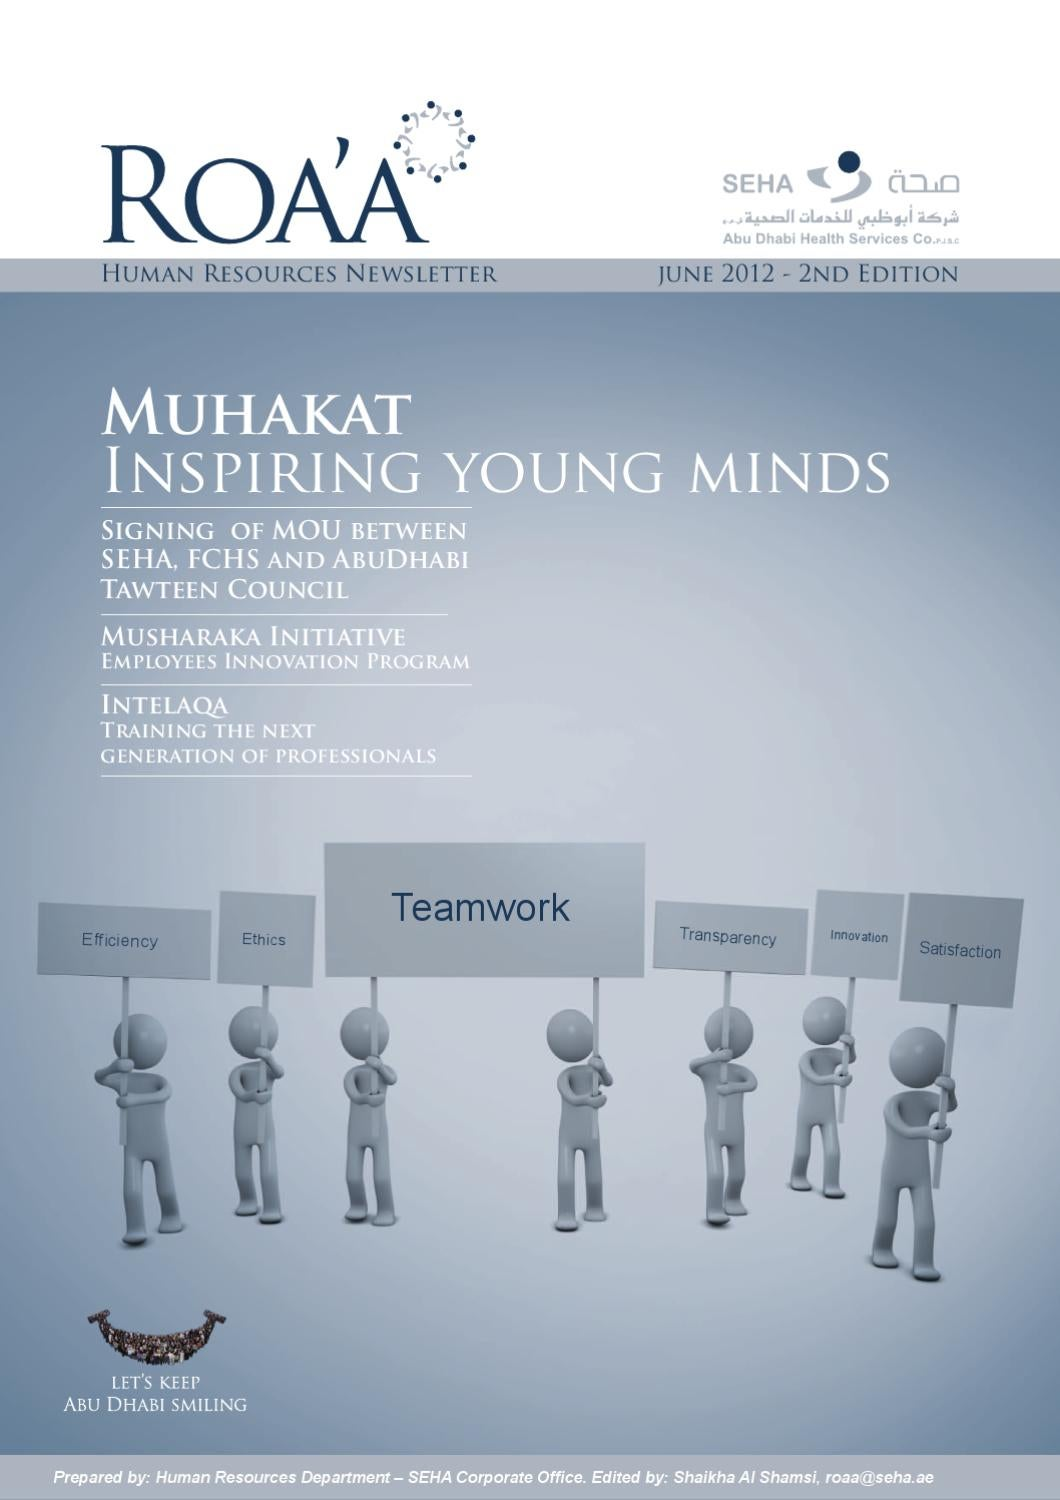 roaa Human Resources Newsletter by SEHA Abu Dhabi - issuu